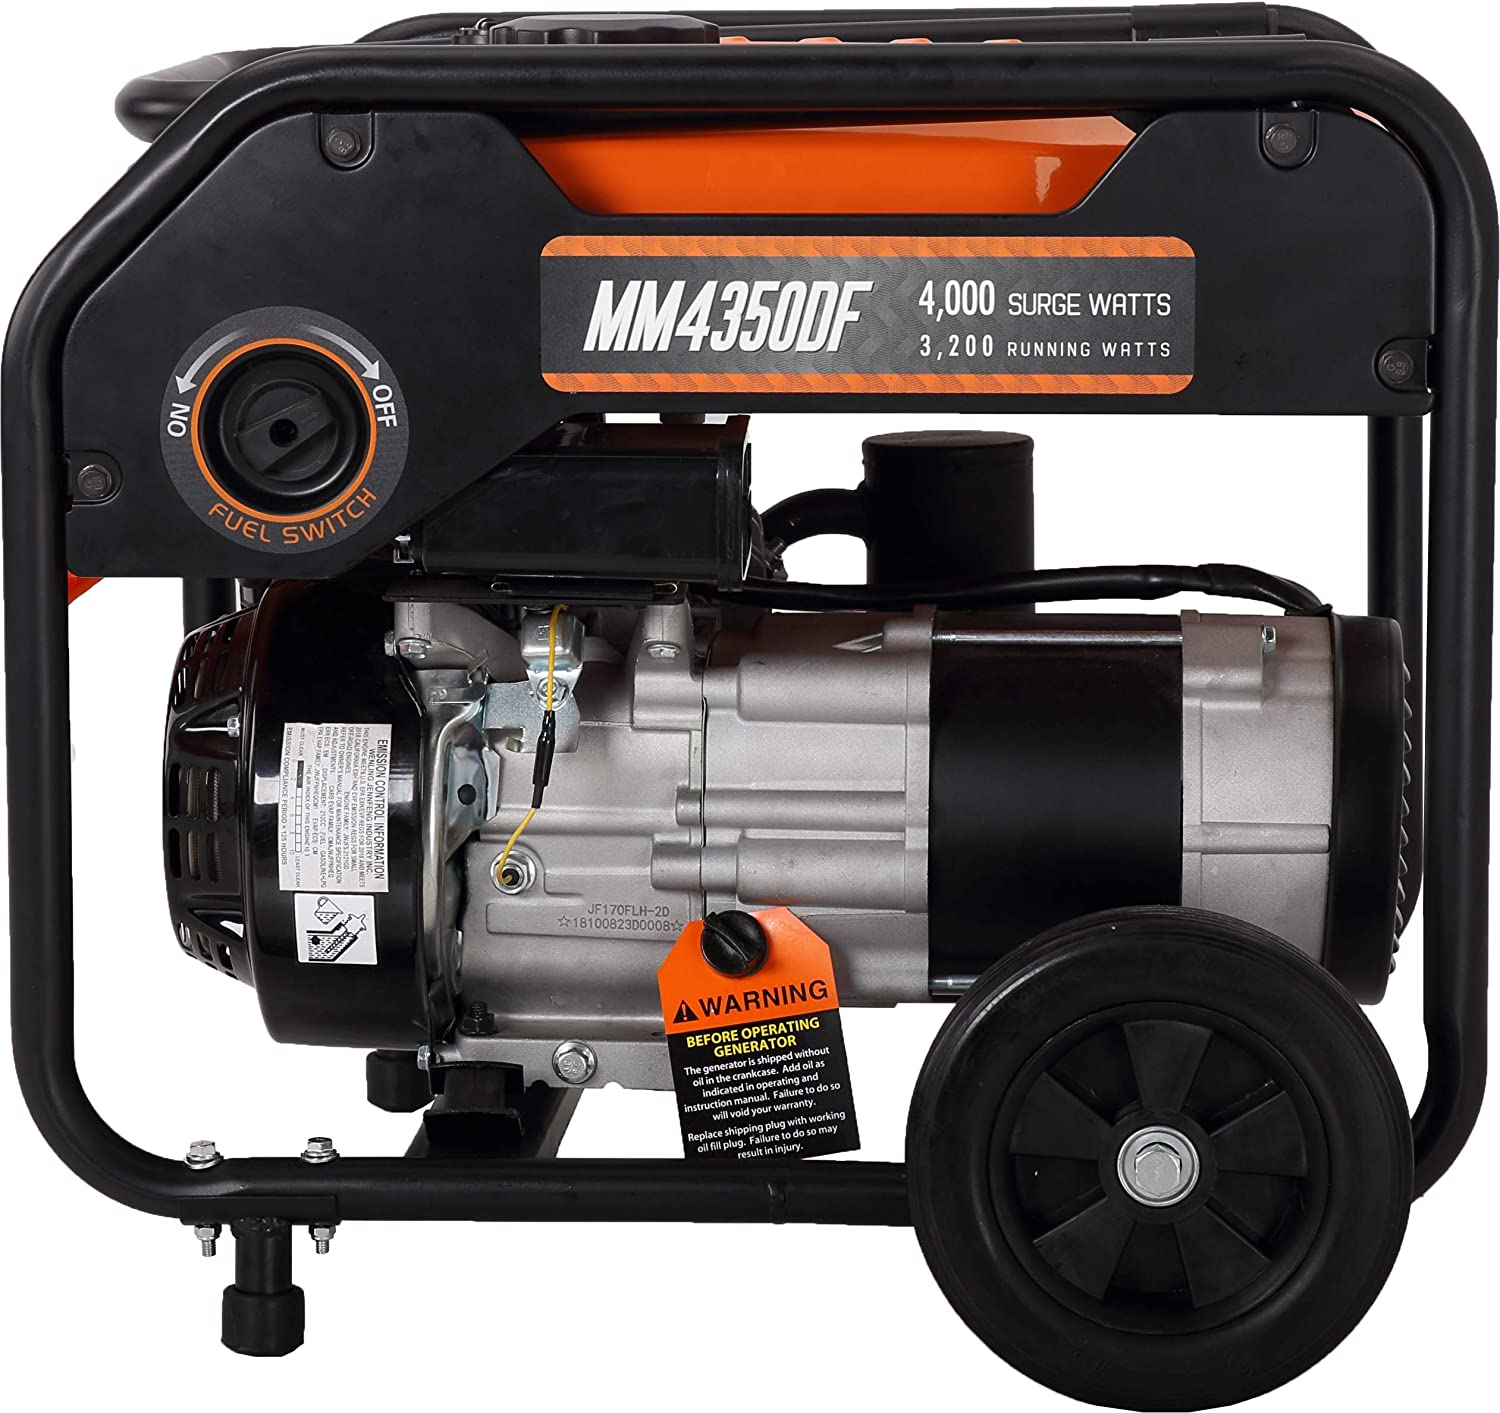 Best Home Generators For Power Outages (2021): Top 10 List 2